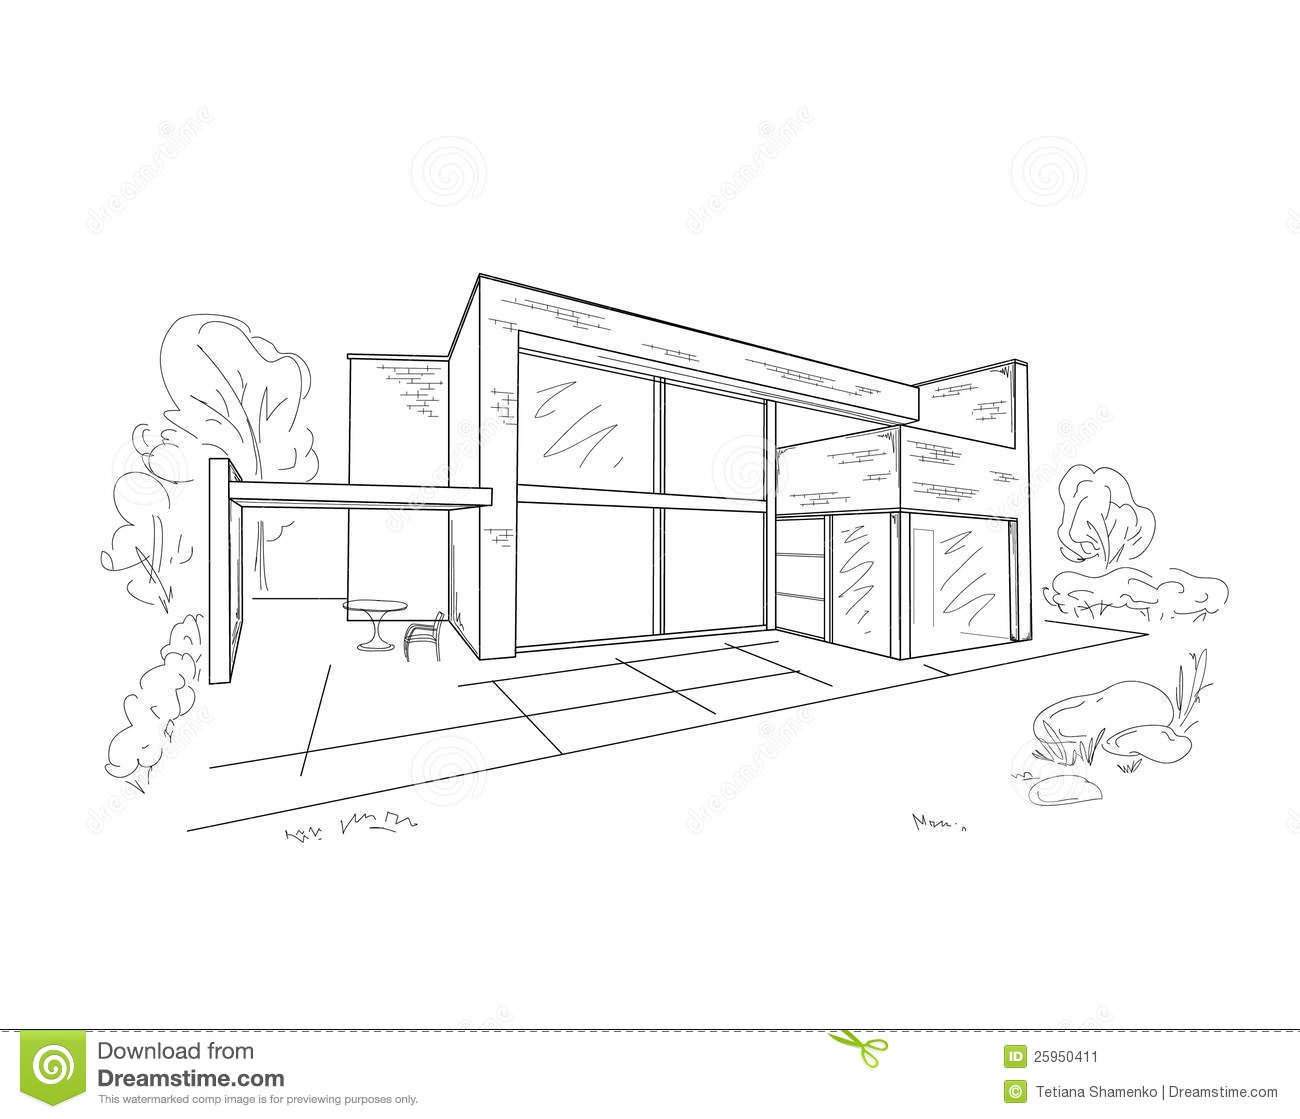 Building drawing stock vector. Image of investment